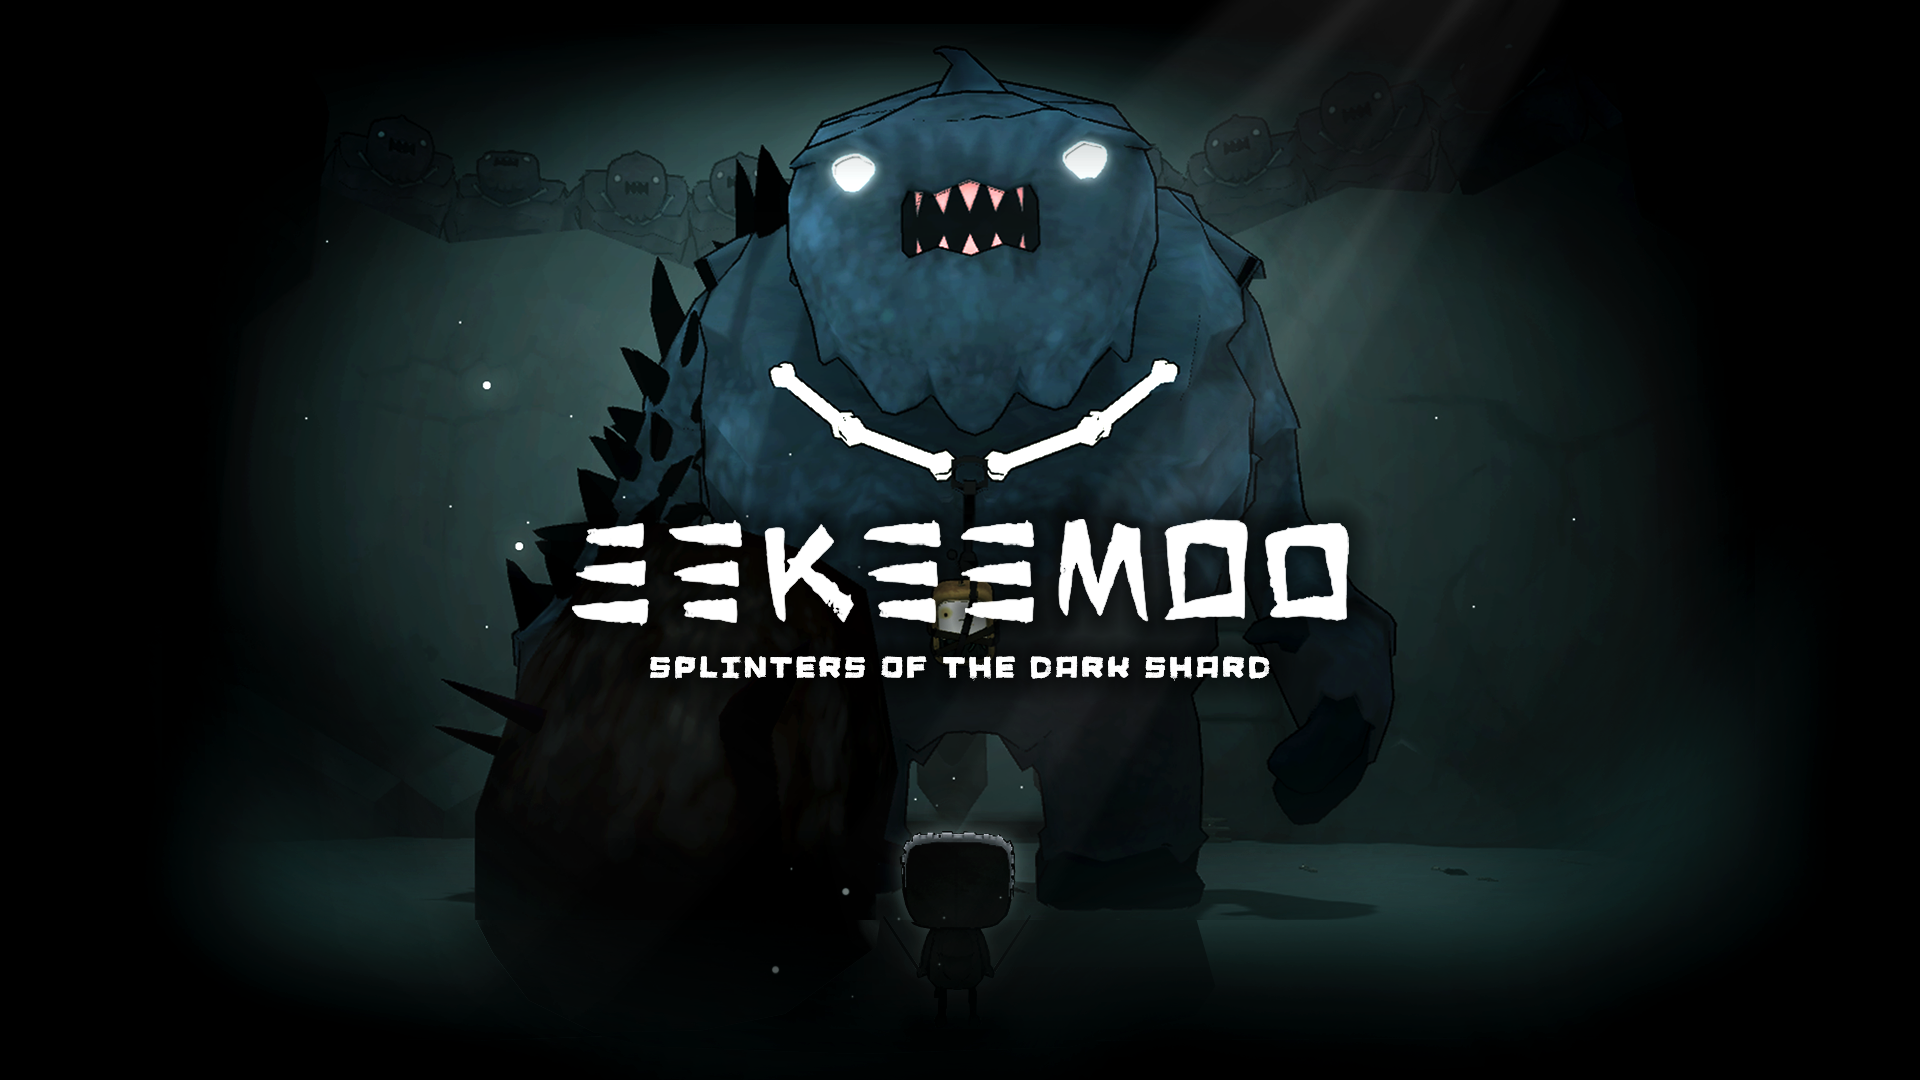 Eekeemoo - Splinters of the Dark Shard